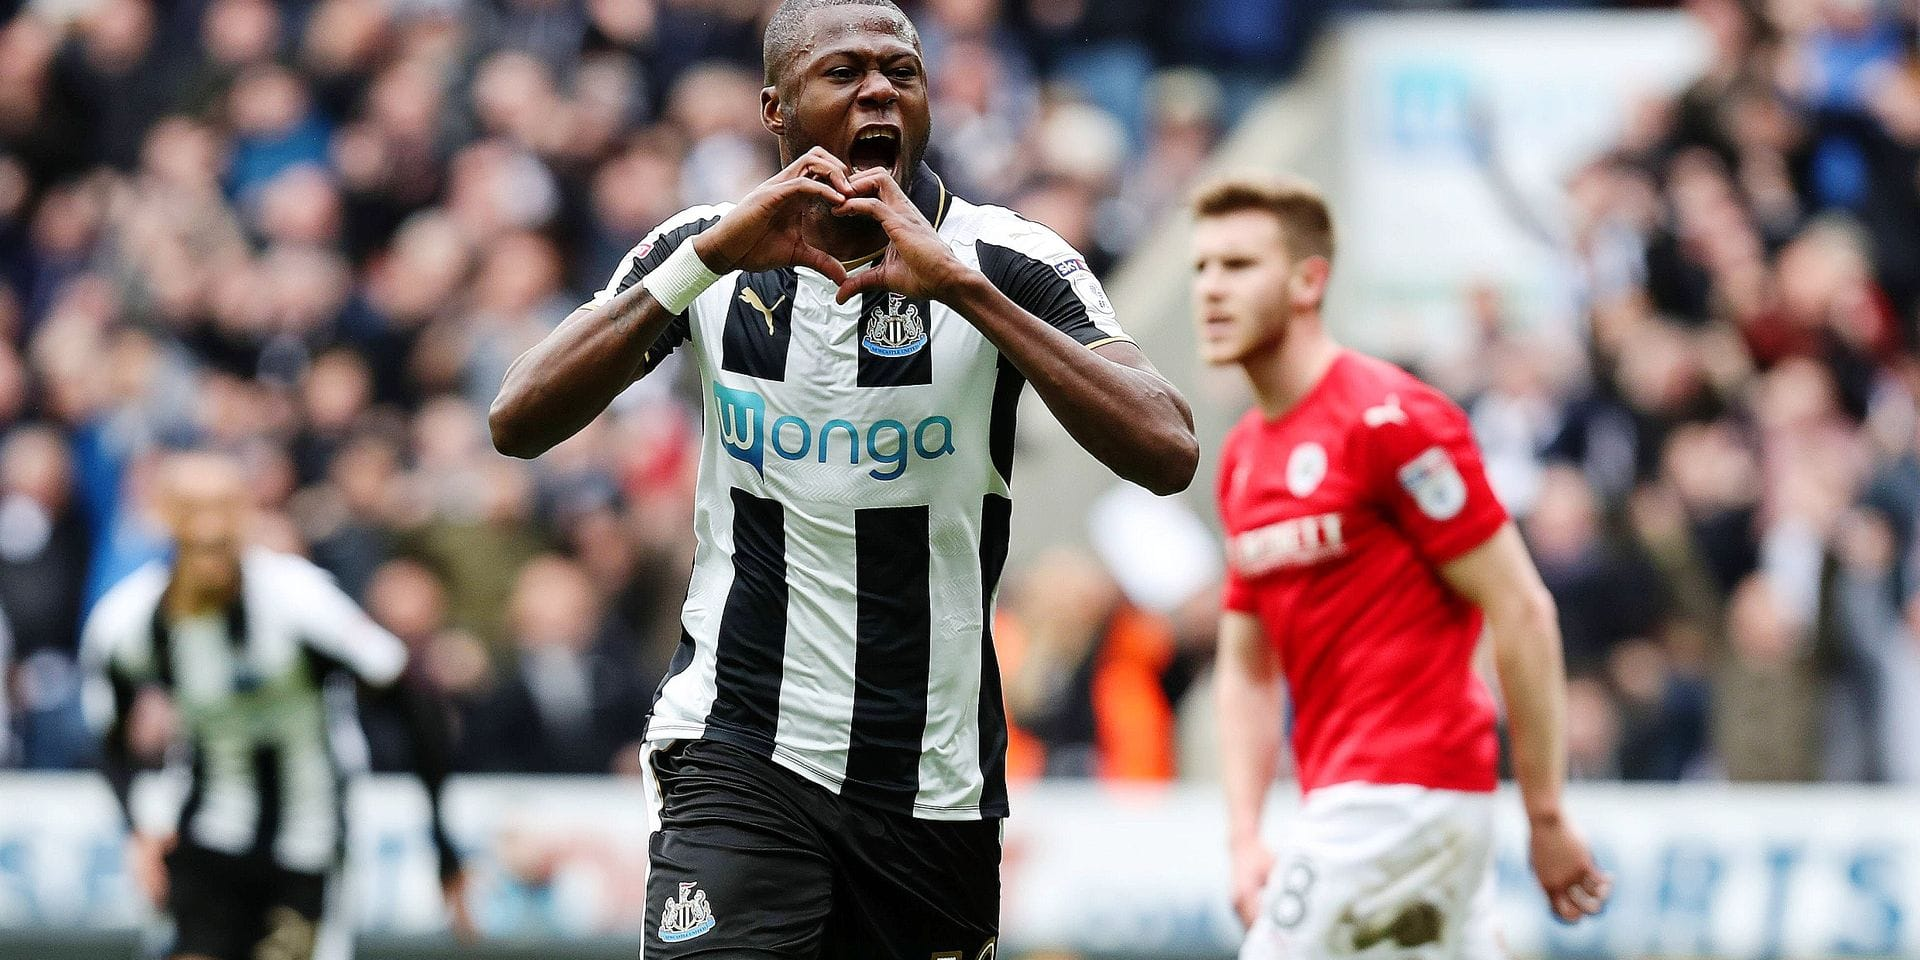 Chancel Mbemba of Newcastle United celebrates scoring his teams second goal of the game during the EFL Championship match at St James Park Stadium, Newcastle upon Tyne. Picture date: May 7th, 2017. Pic credit should read: Jamie Tyerman/Sportimage PUBLICATIONxNOTxINxUK Chancel Mbemba of Newcastle United Celebrates Scoring His Teams Second Goal of The Game during The EFL Championship Match AT St James Park Stage Newcastle UPON Tyne Picture Date May 7th 2017 Pic Credit should Read Jamie Tyerman Sportimage PUBLICATIONxNOTxINxUK